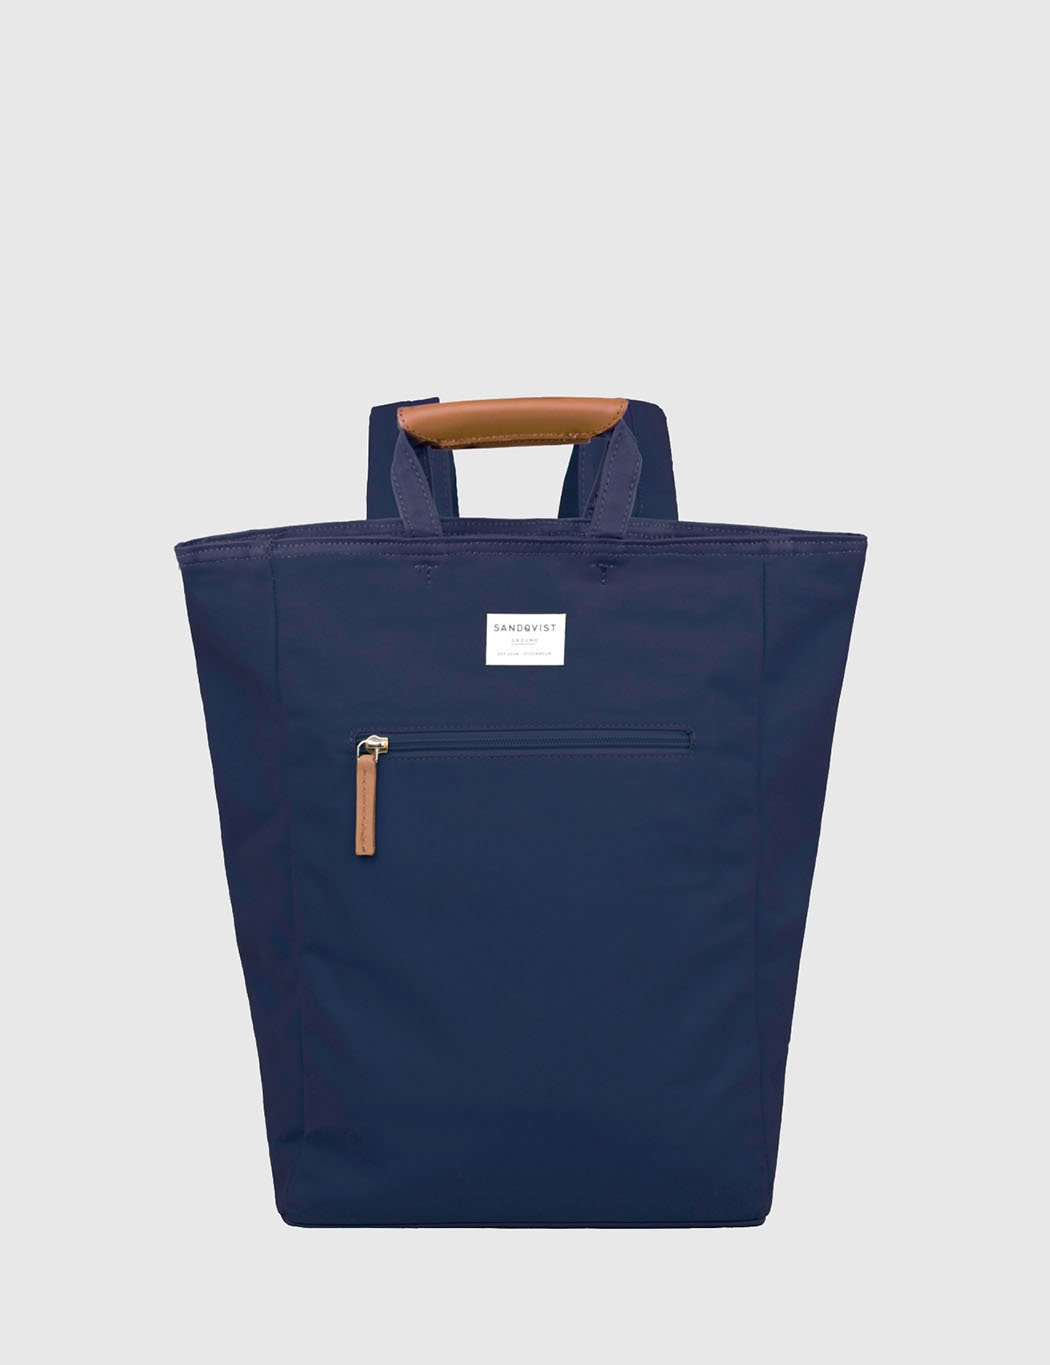 Sandqvist Tony Tote Bag (Canvas) - Blue